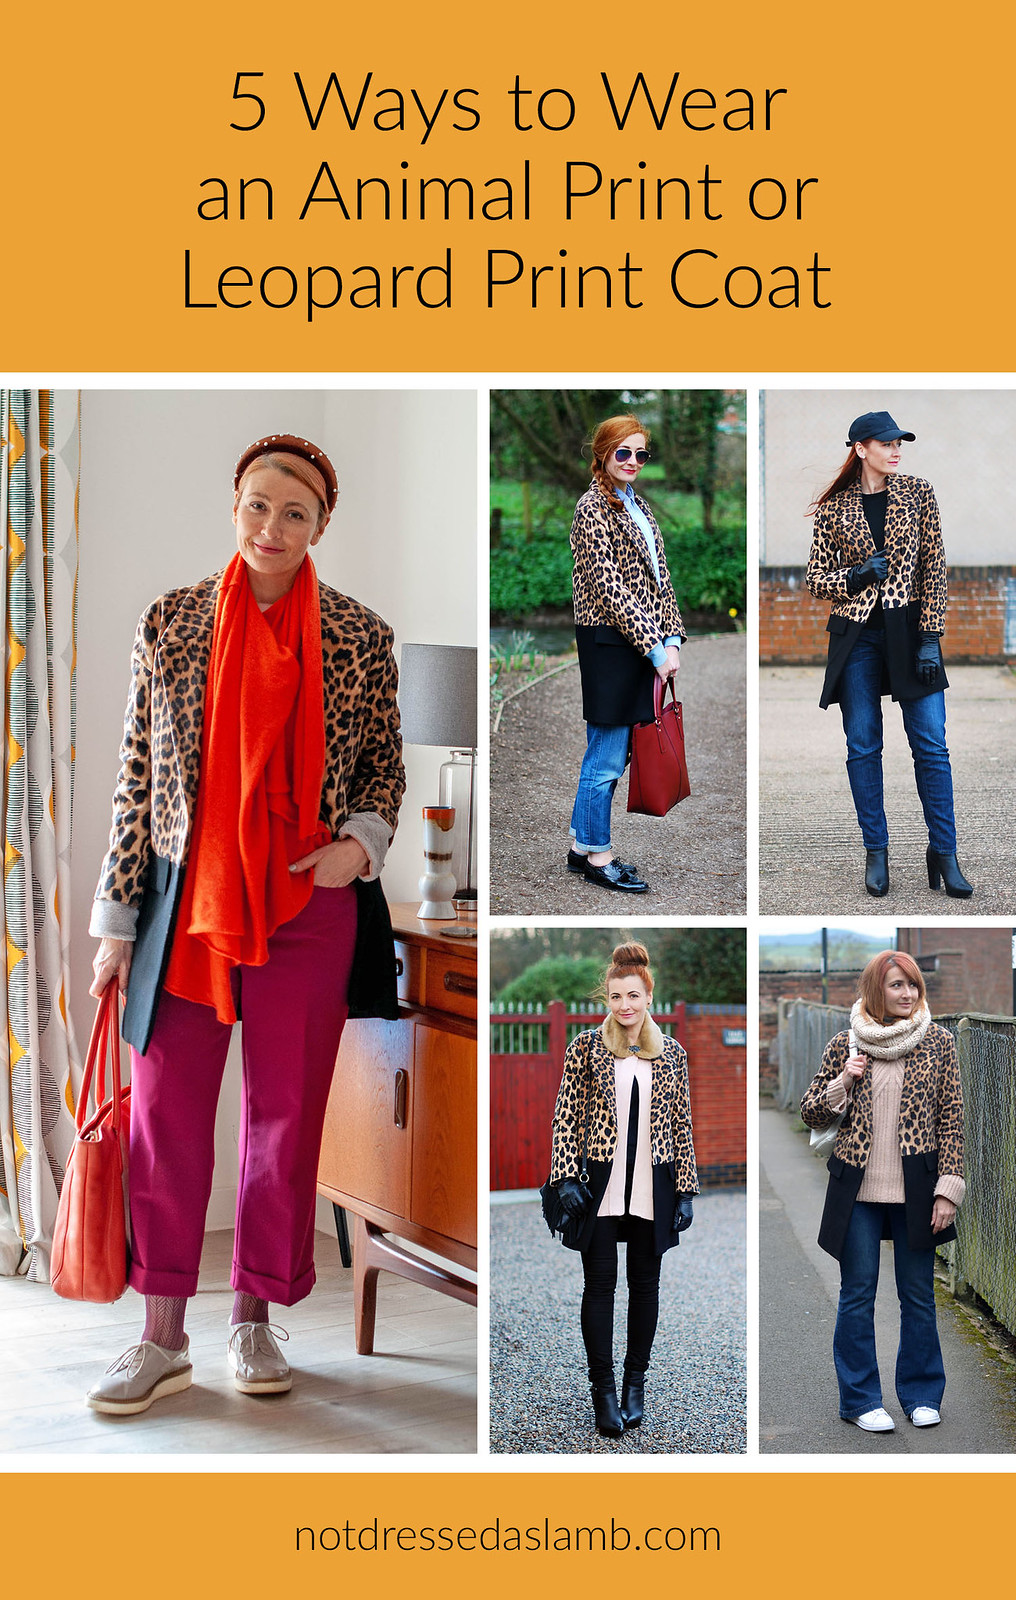 5 Ways to Wear an Animal Print or Leopard Print Coat | Not Dressed As Lamb